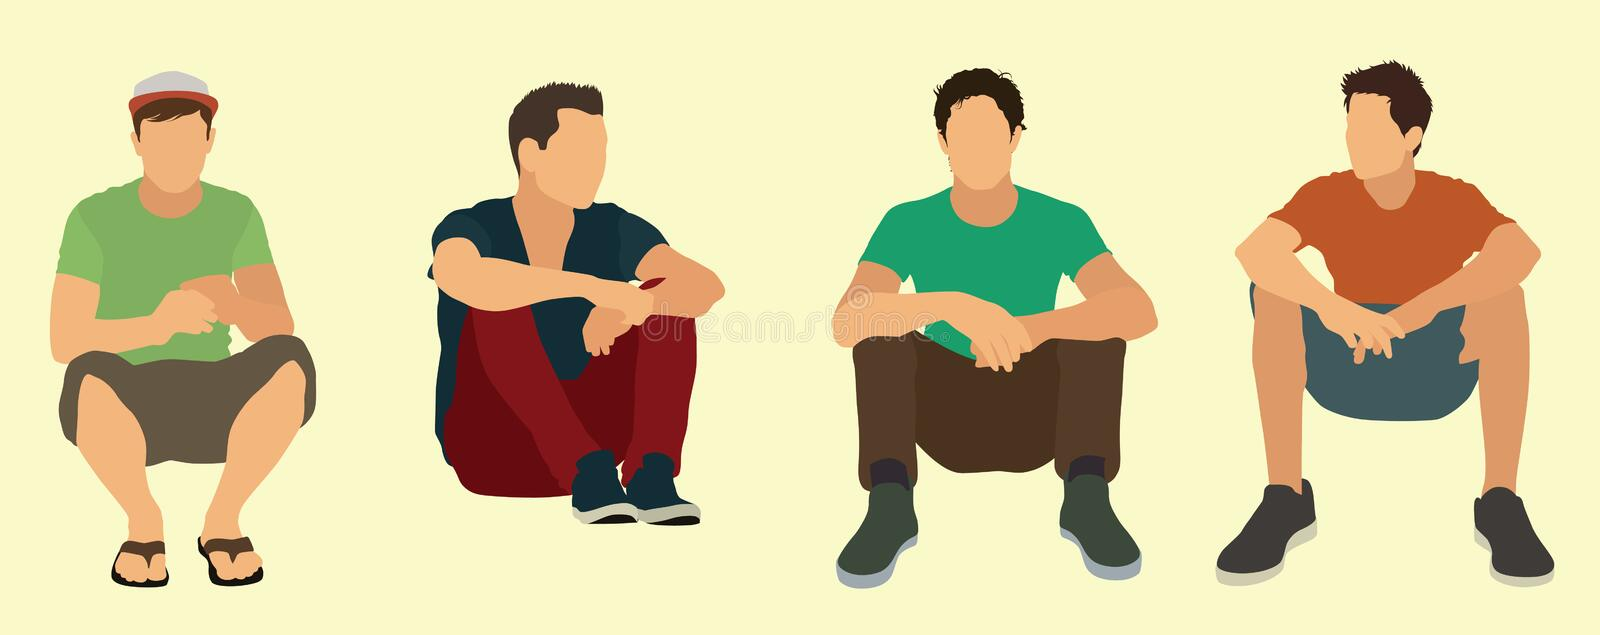 Teens Sitting Down on the Ground stock illustration